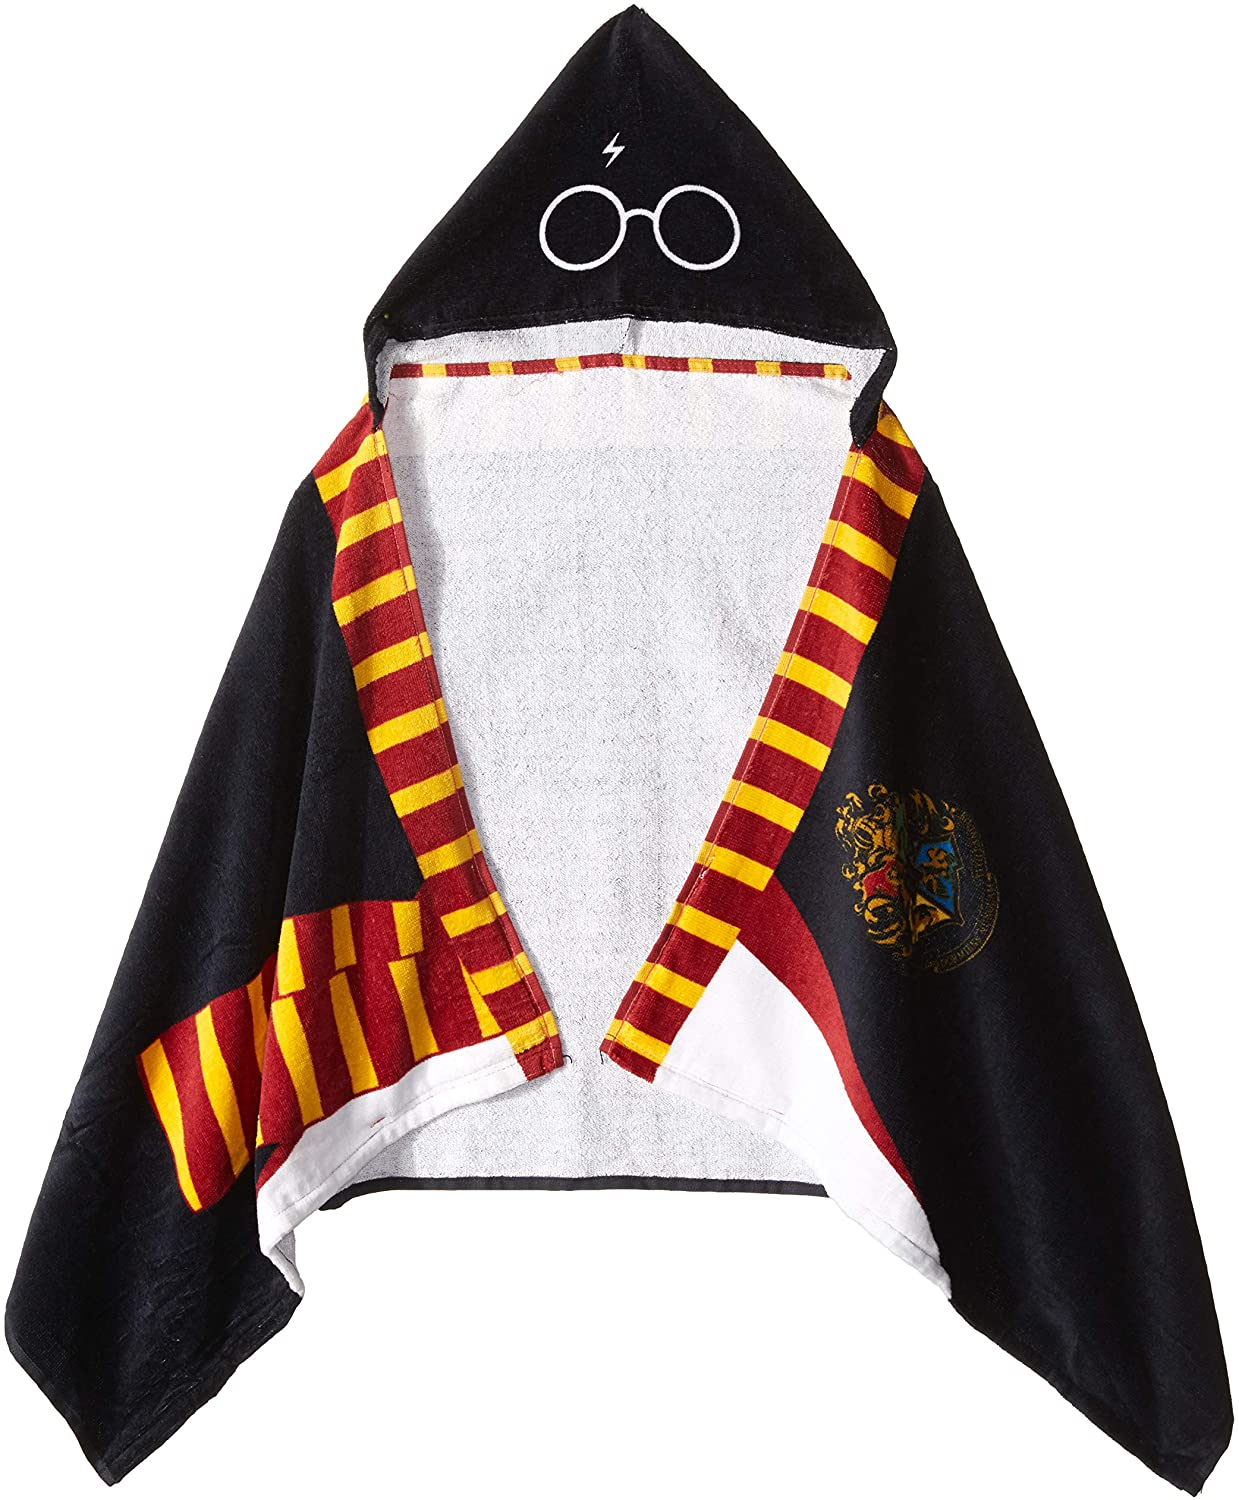 Jay Franco Warner Bros. Harry Potter Hooded Bath/Pool/Beach Towel